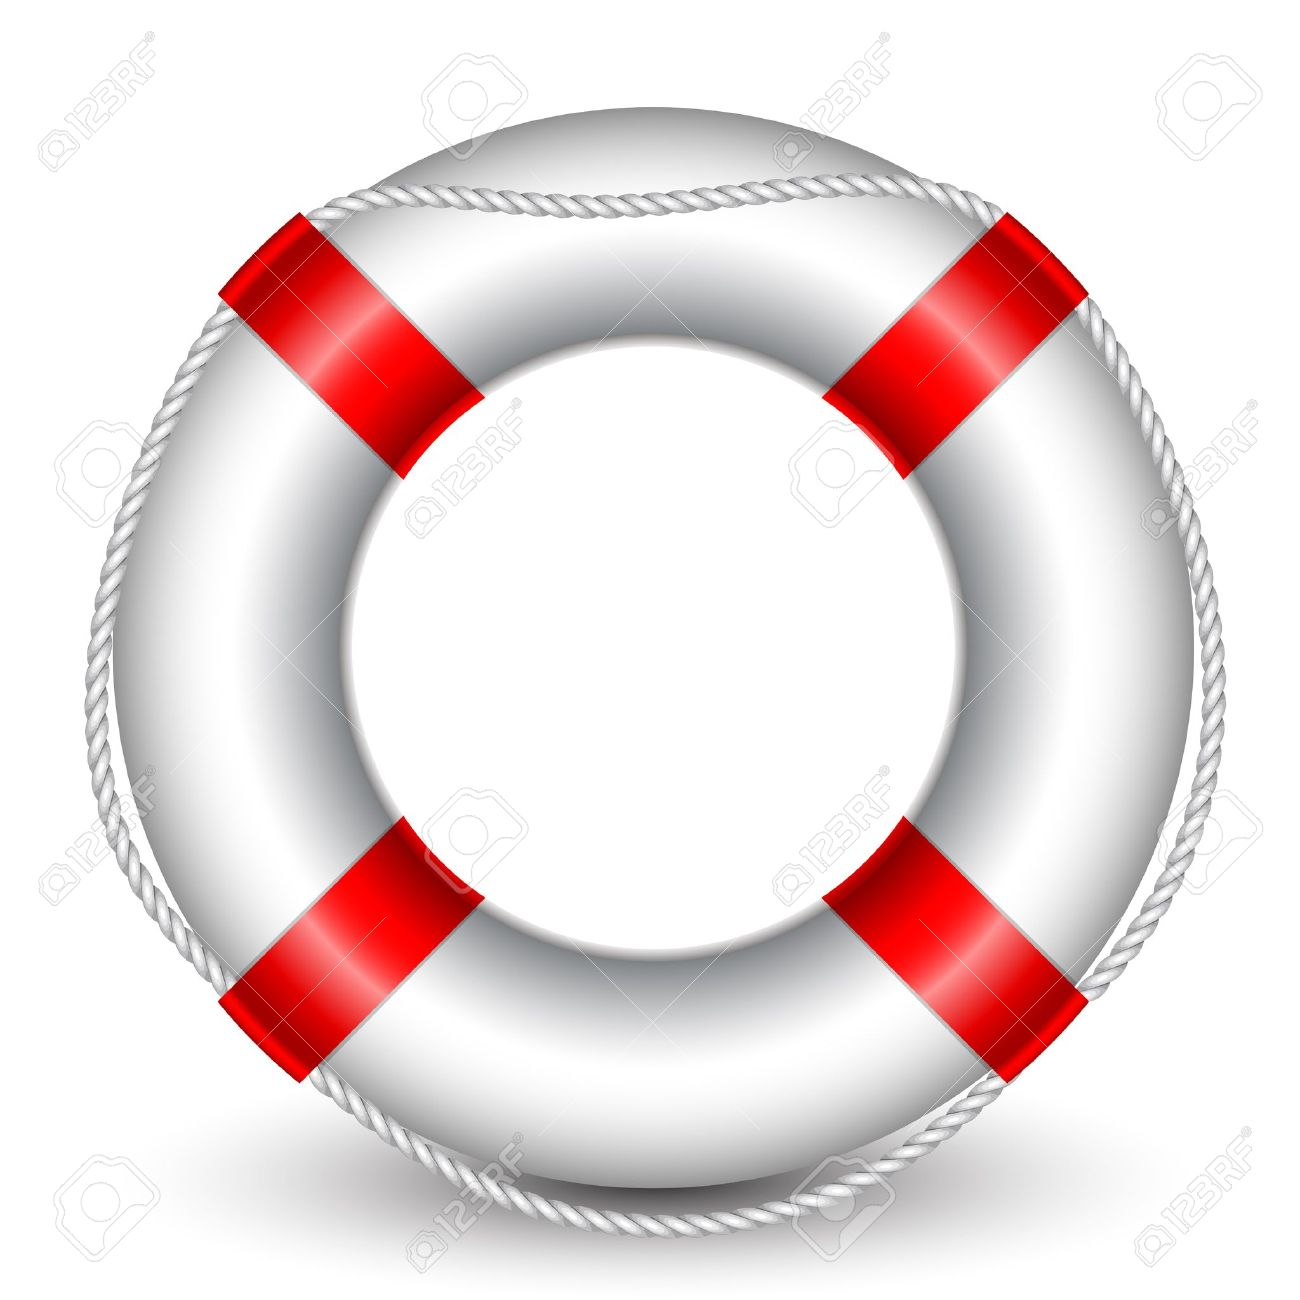 Amazon.com: Throw Rings - Safety & Flotation Devices: Sports ...